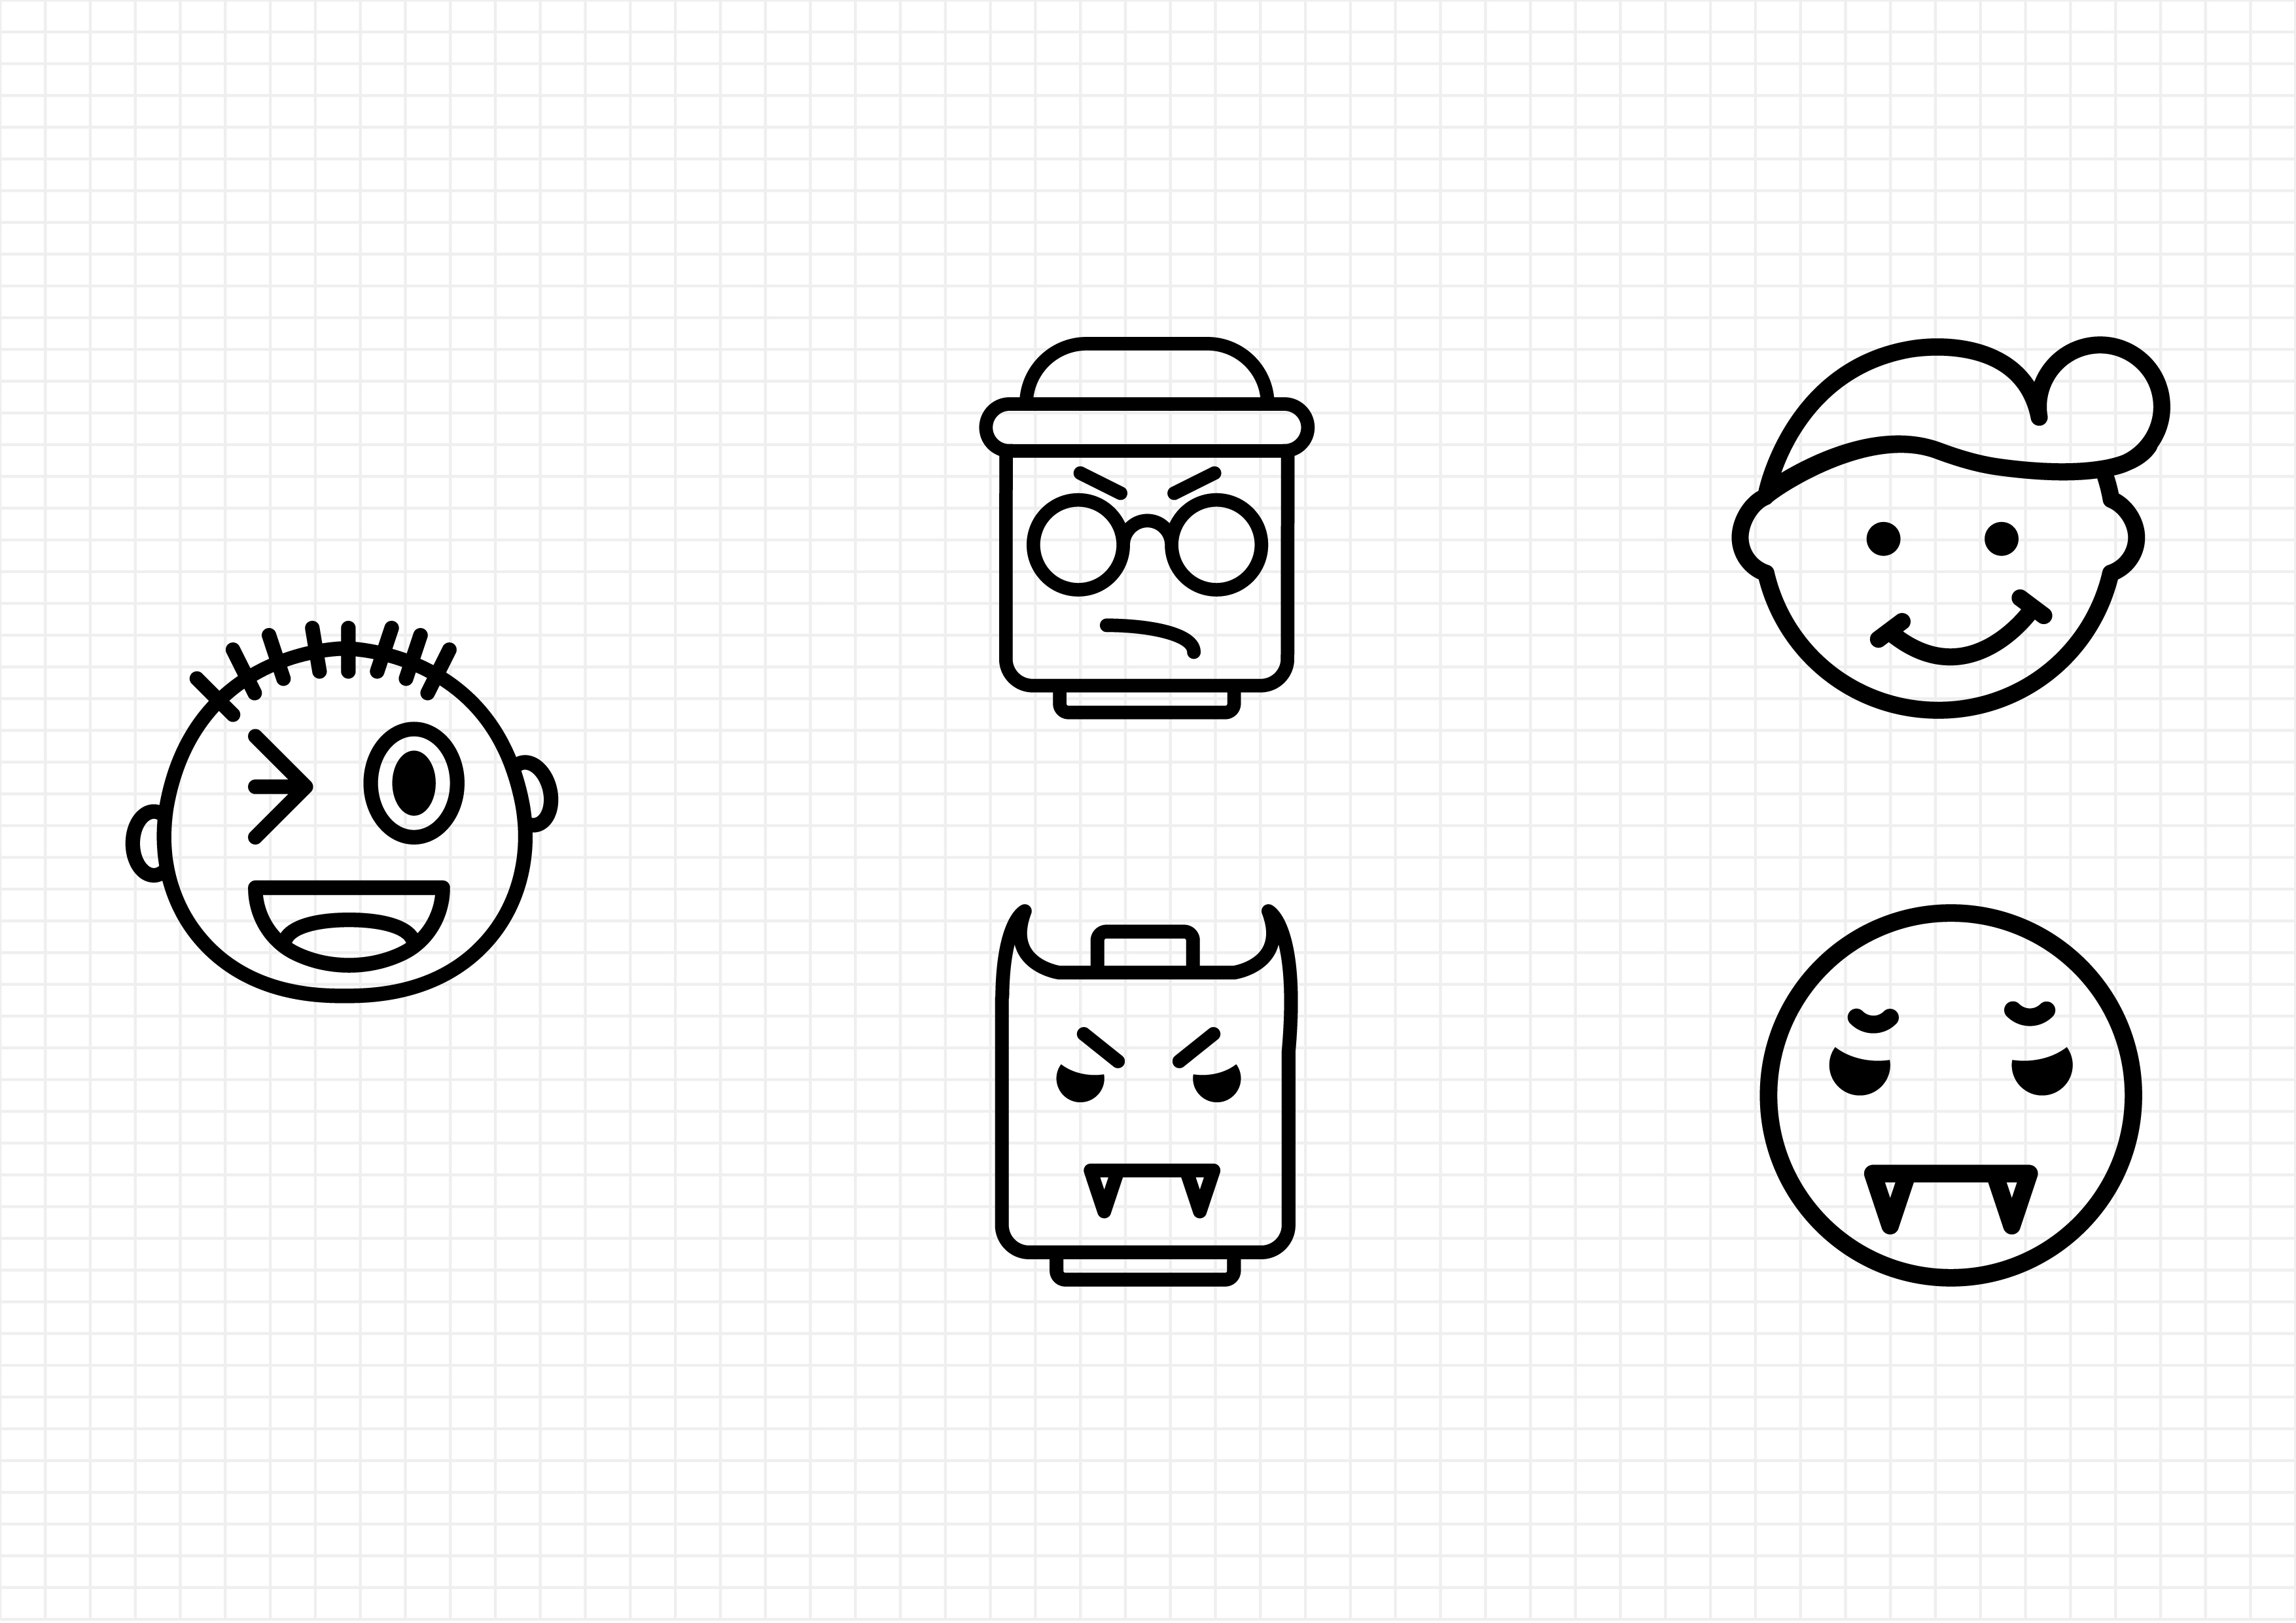 Download Free Emoticons Collection Graphic By Beryladamayu Creative Fabrica for Cricut Explore, Silhouette and other cutting machines.